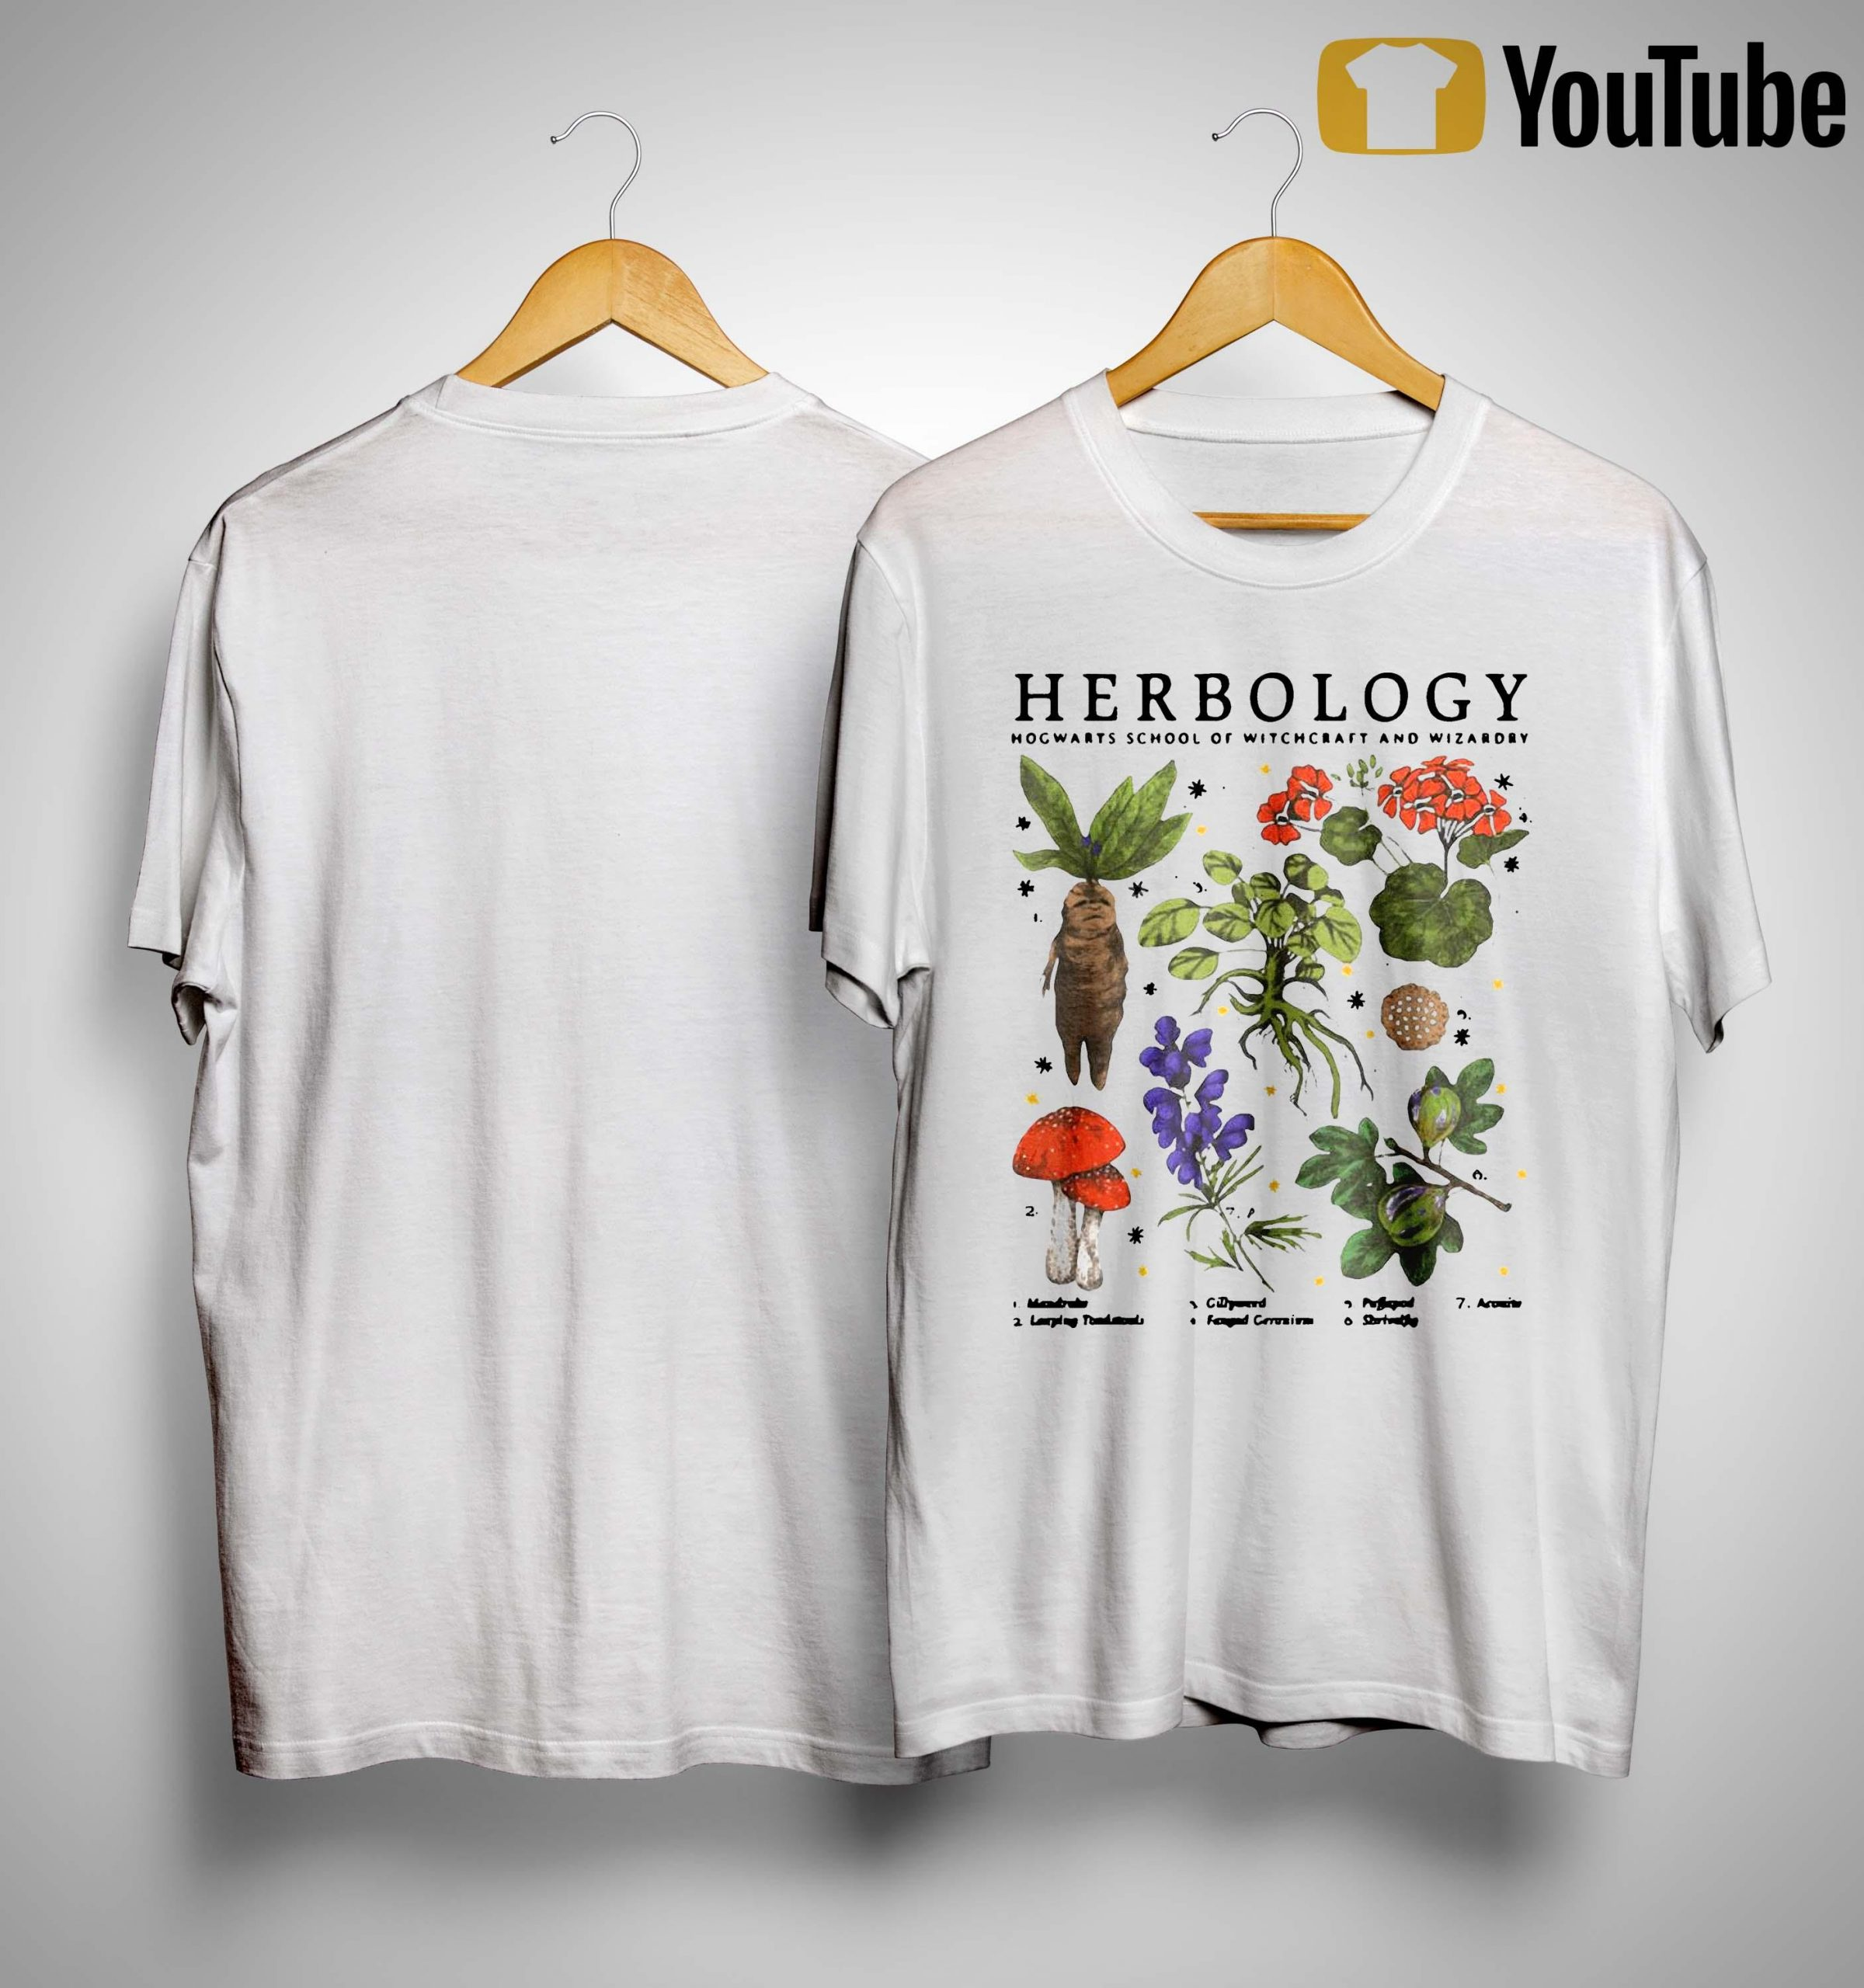 Herbology Hogwarts School Of Witchcraft And Wizardry Shirt